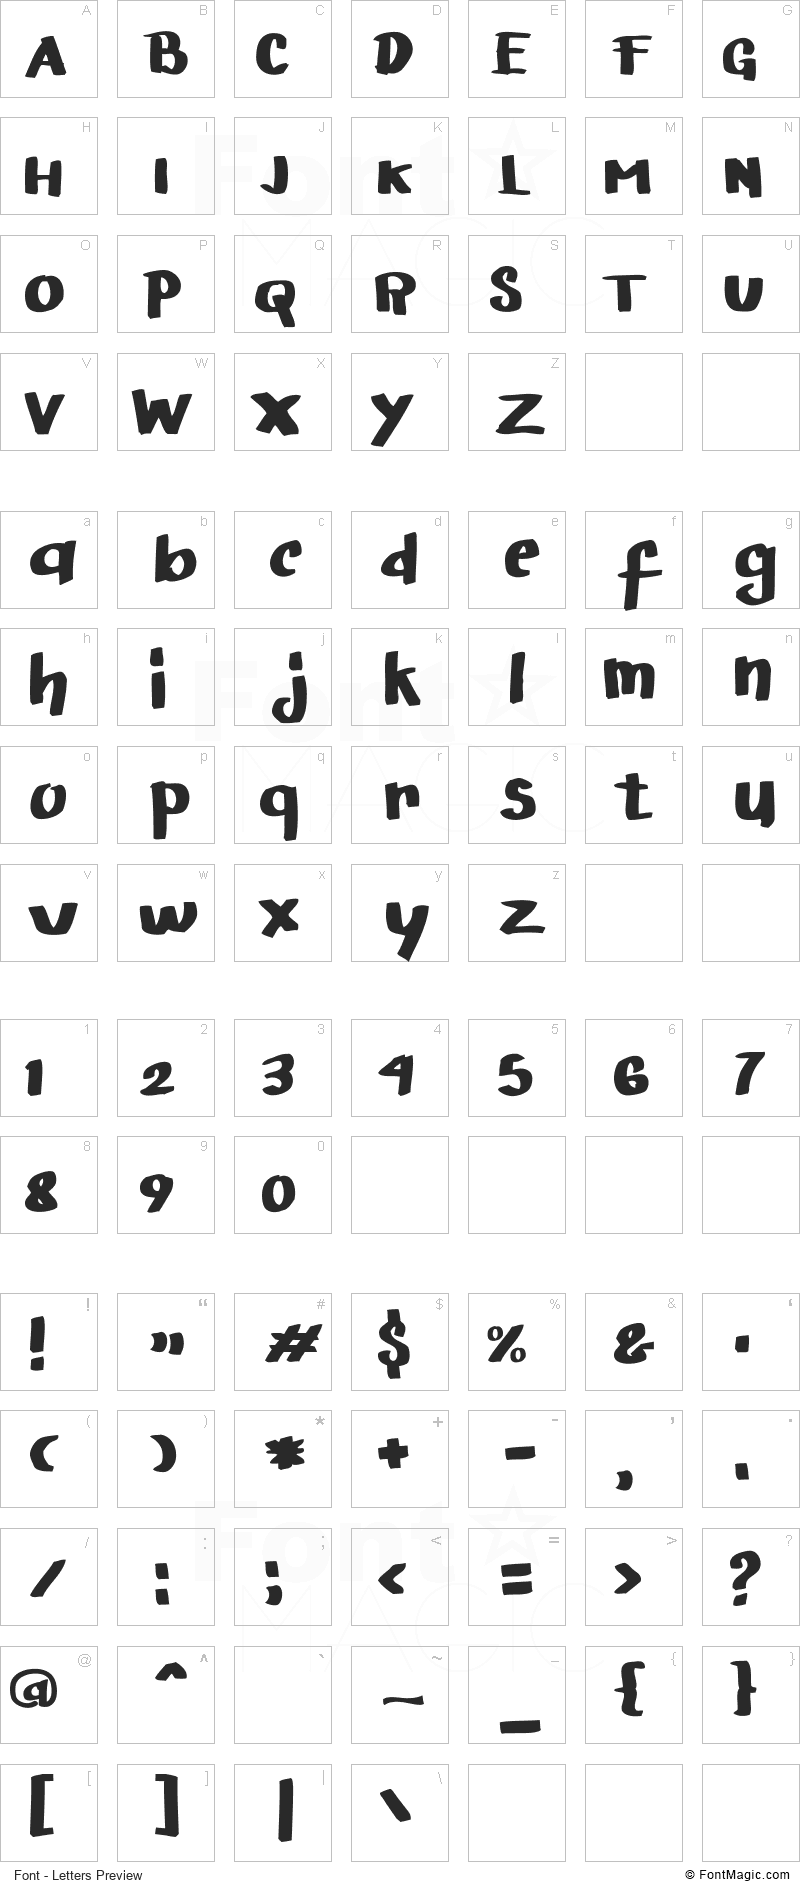 Arigato Font - All Latters Preview Chart